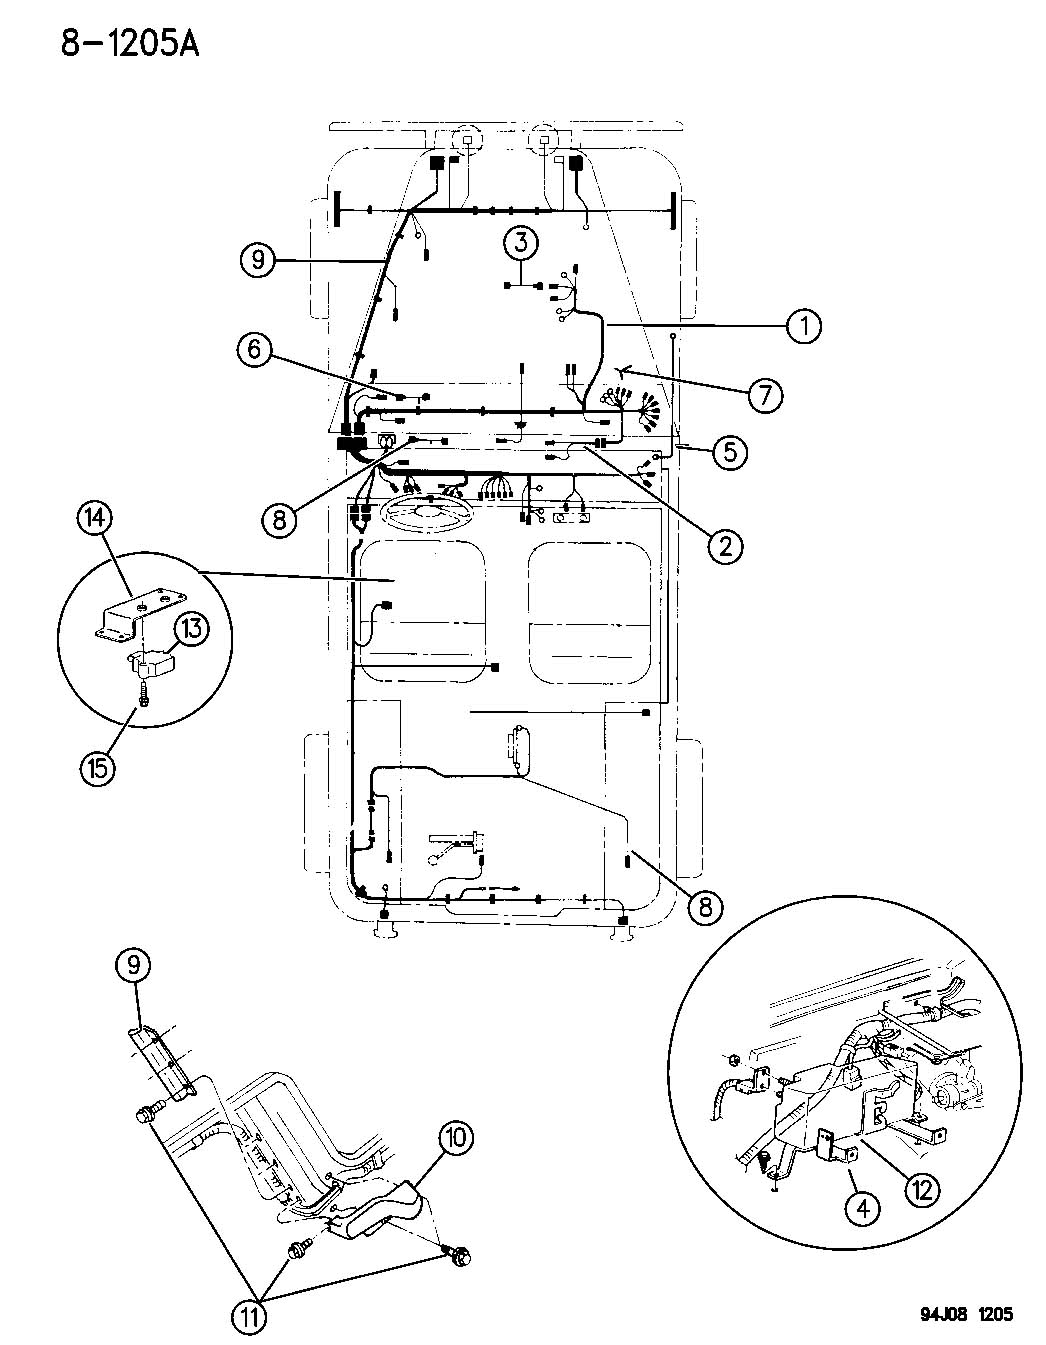 1995 Jeep Wrangler Engine Diagram Free Wiring For You Pcv 2 5l Power Tech I 4 Cyl 3 Spd 1993 Wiper Motor